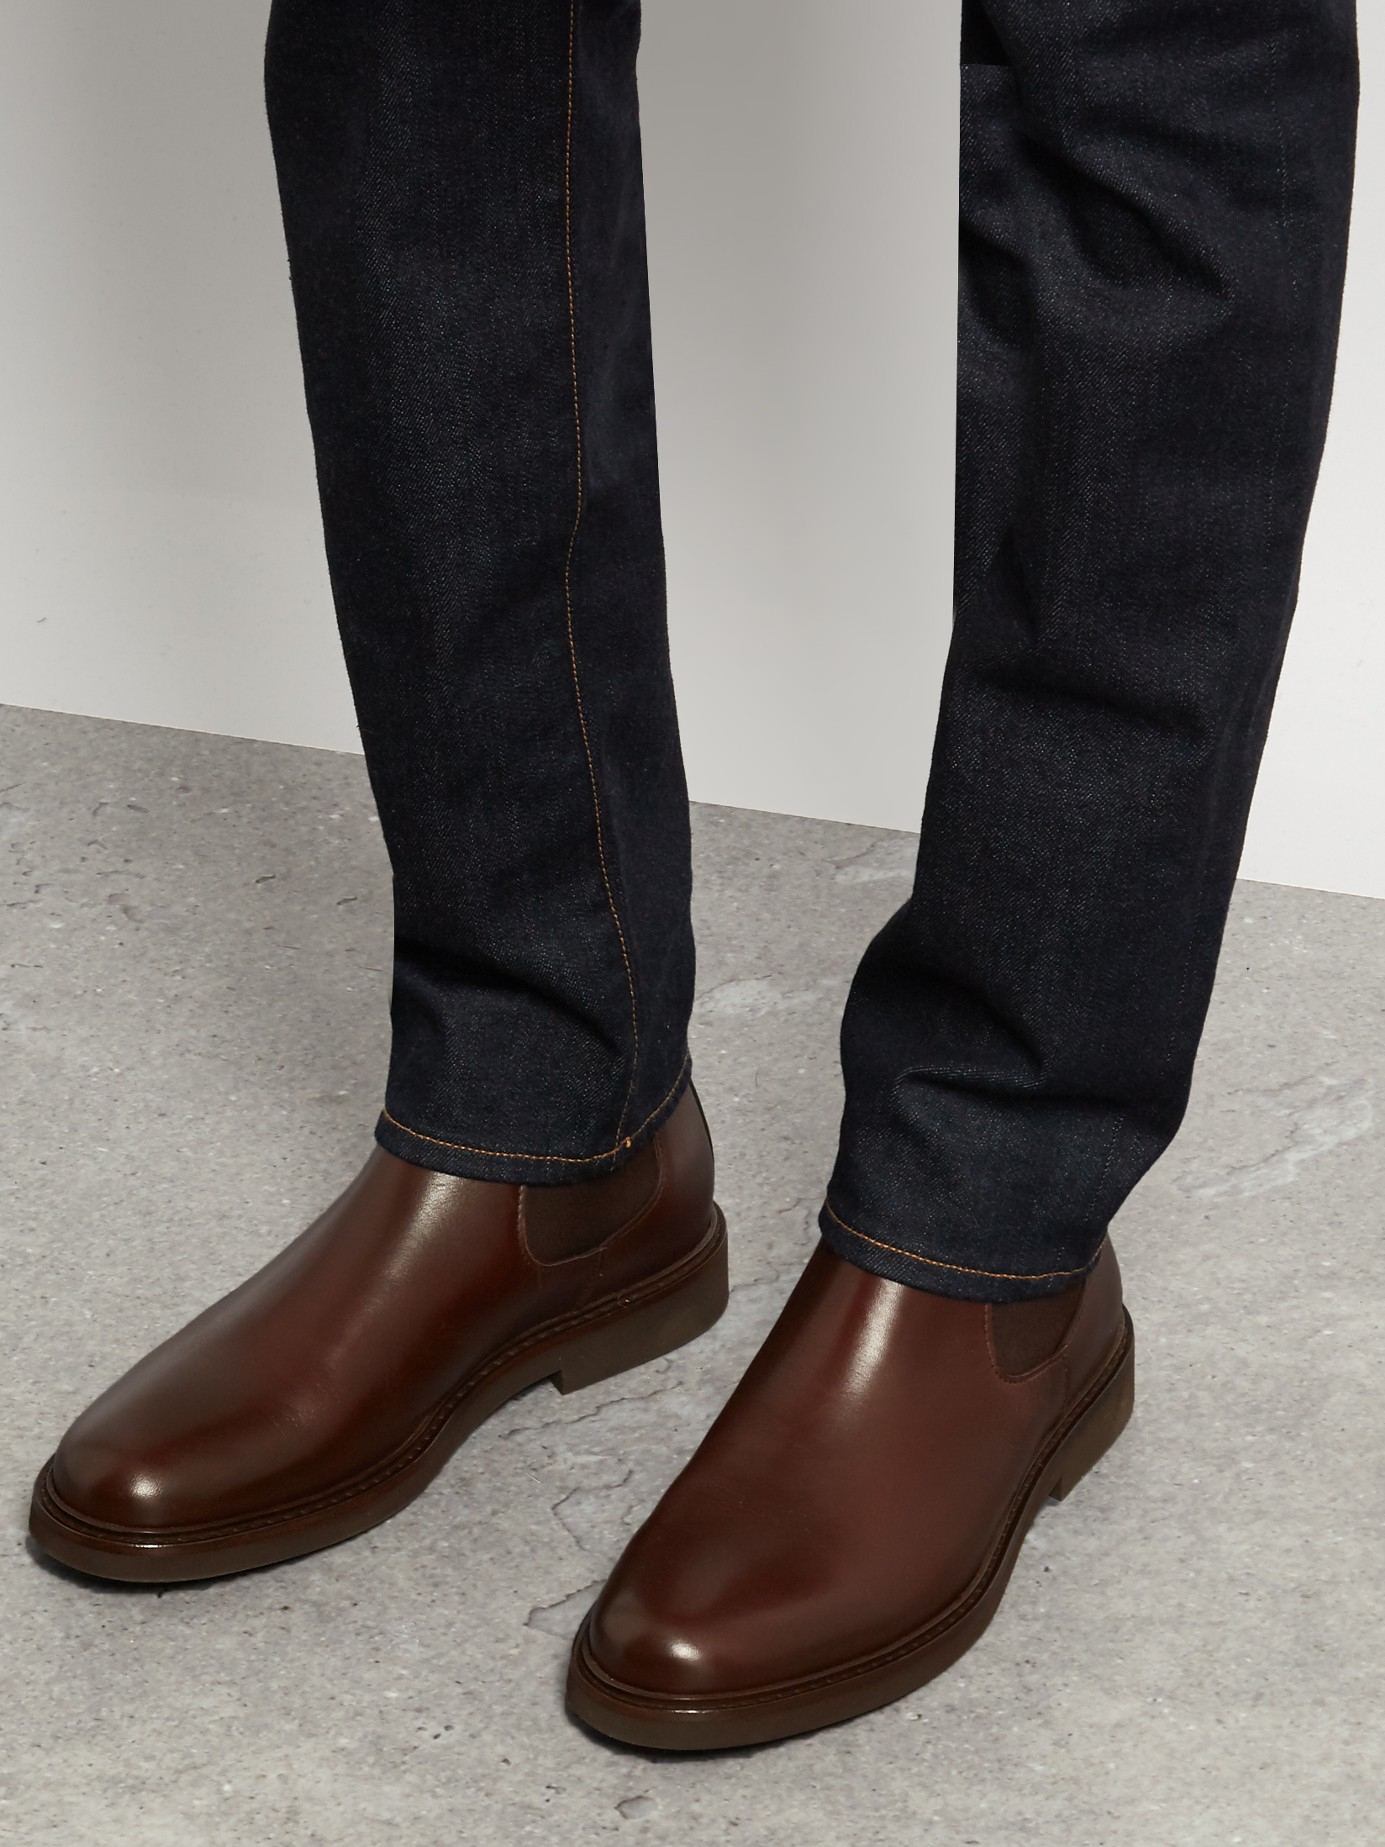 A.P.C. Leather Ankle Boots clearance online cheap real LlnYV8C4